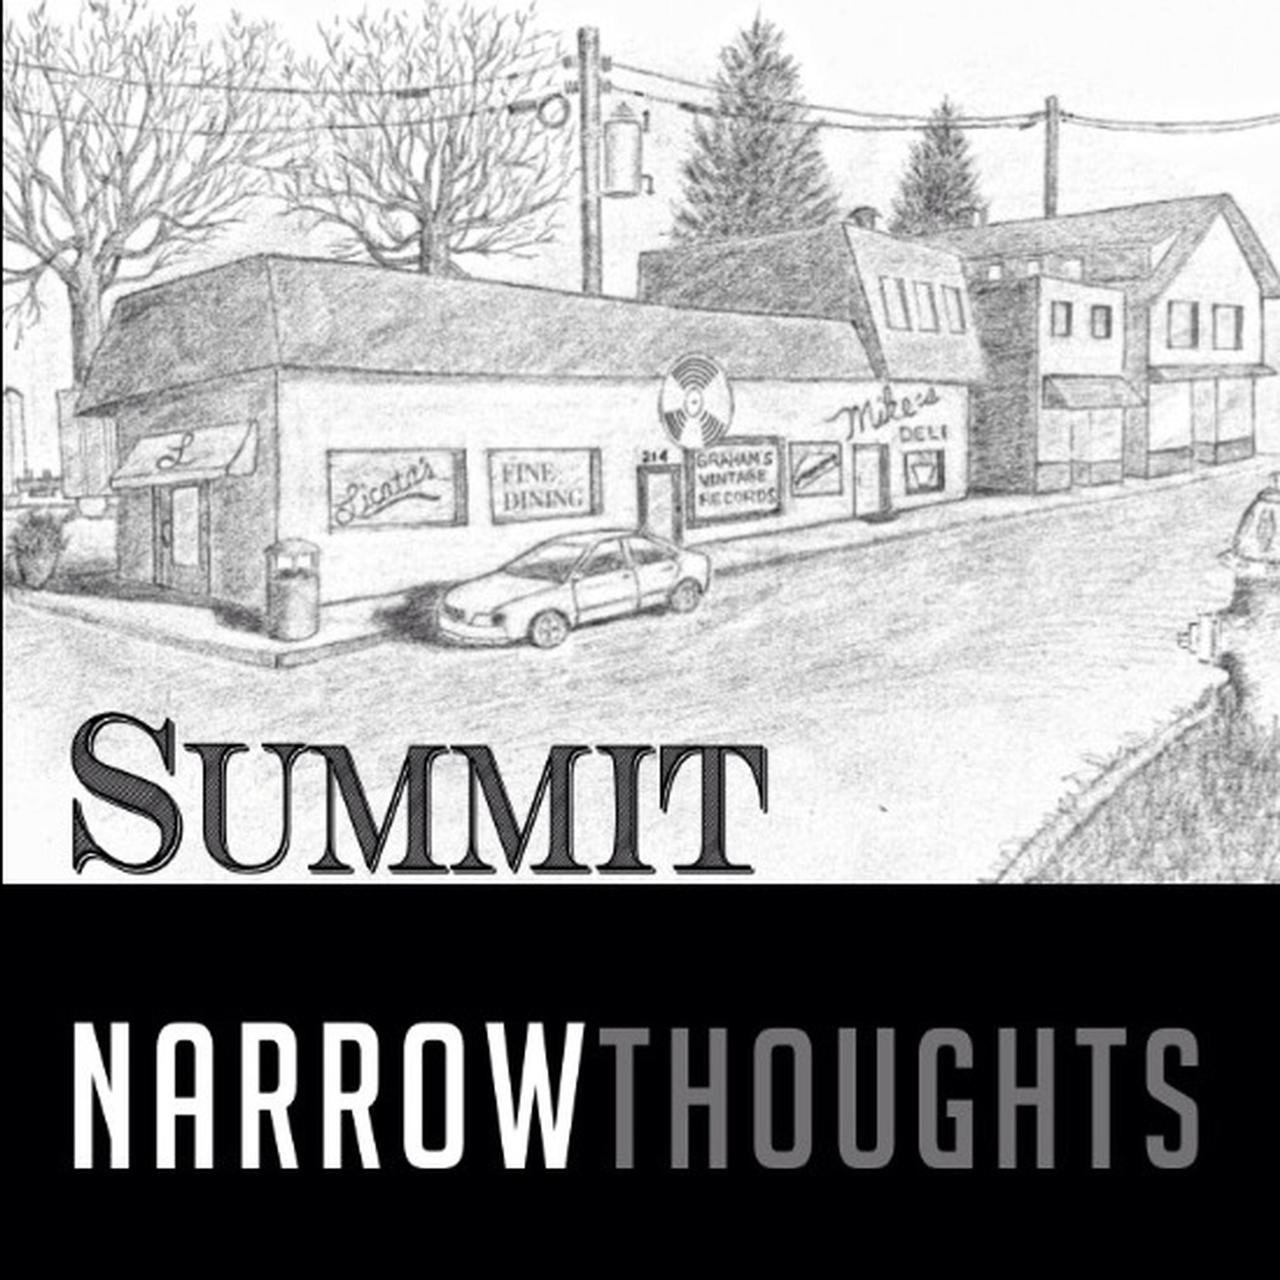 Narrow Thoughts